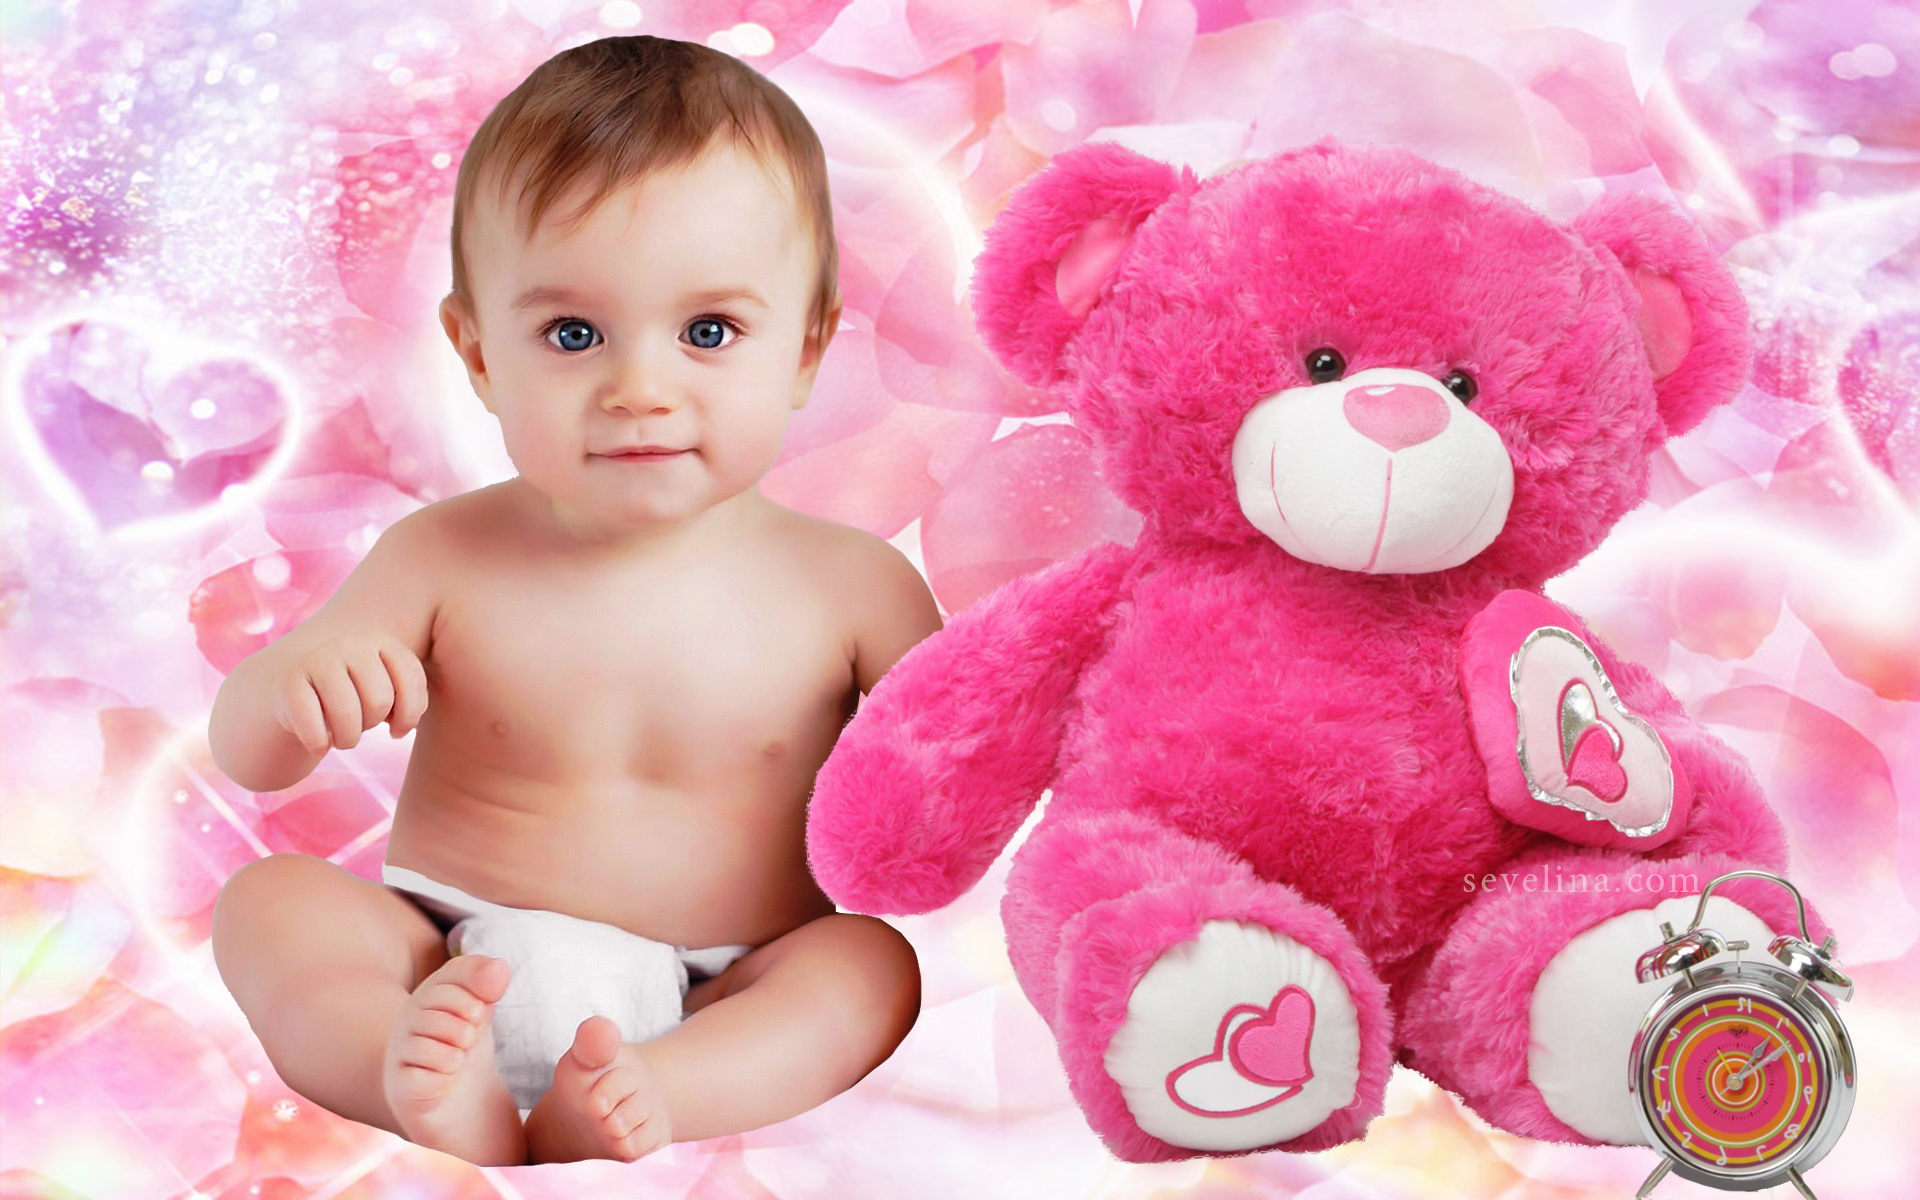 Love Wallpaper With Baby : Top 14 amazing Valentines day wallpaper 2014 Sevelina Games for girls